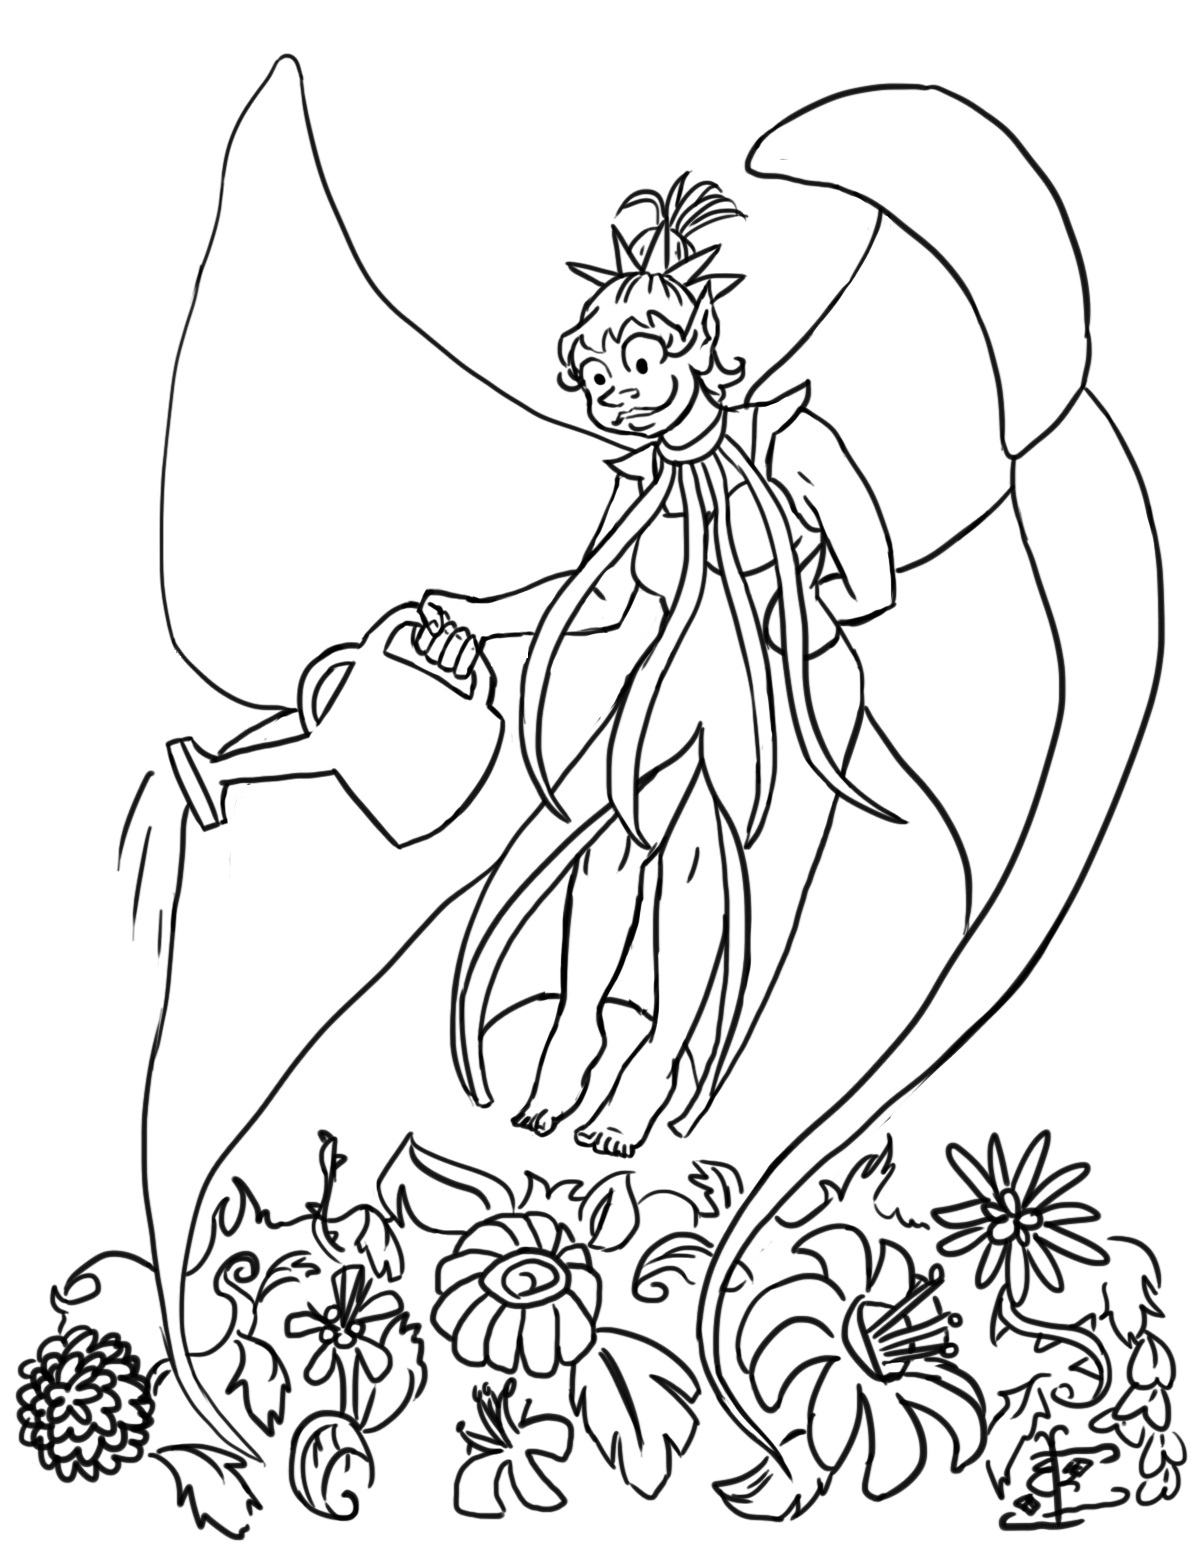 Design the Wings Coloring Book Fairies | Indiegogo